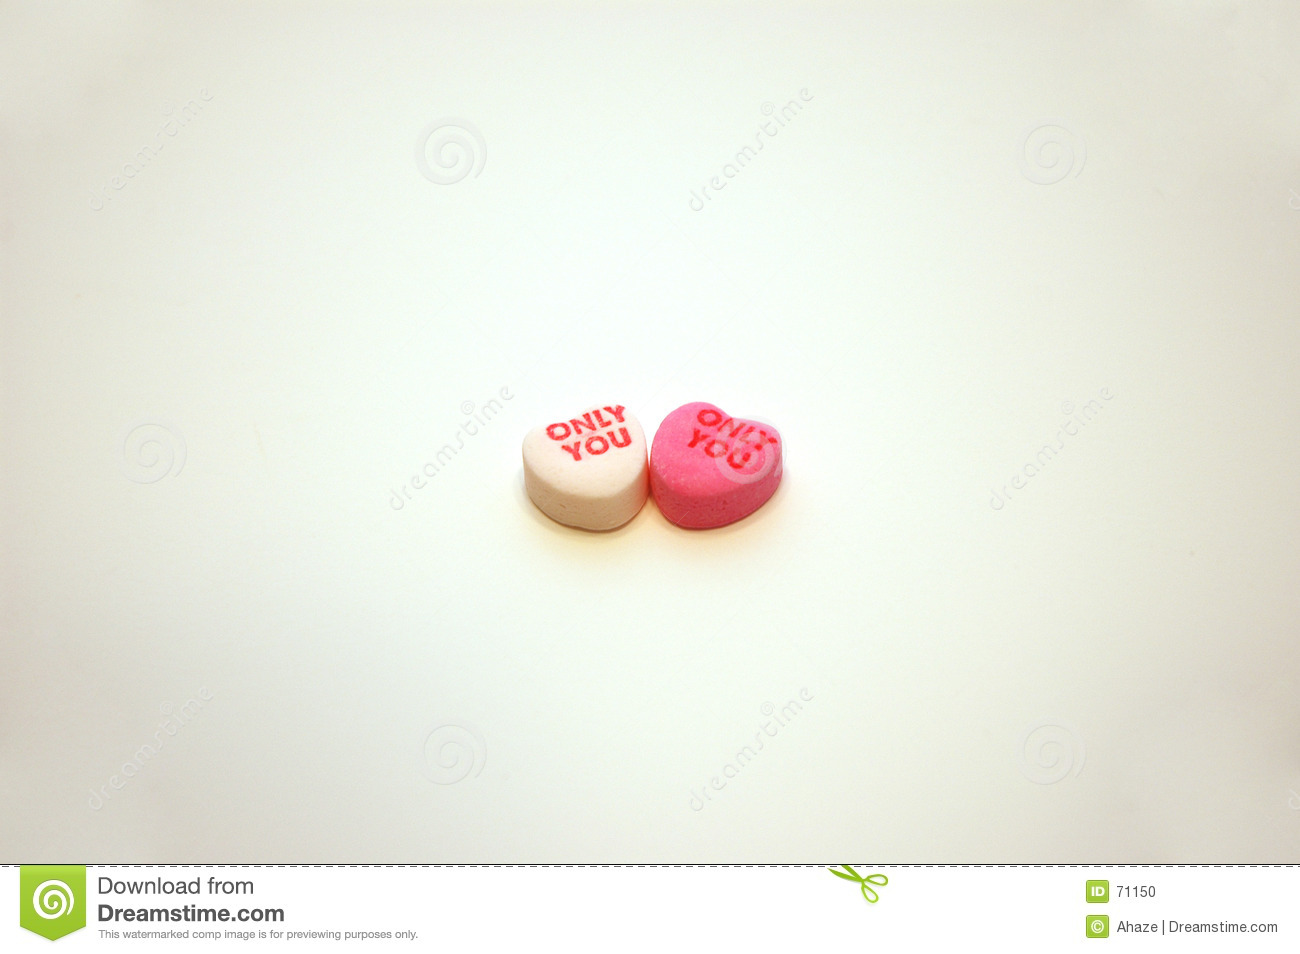 Only You Valentine's Day Conversation Hearts